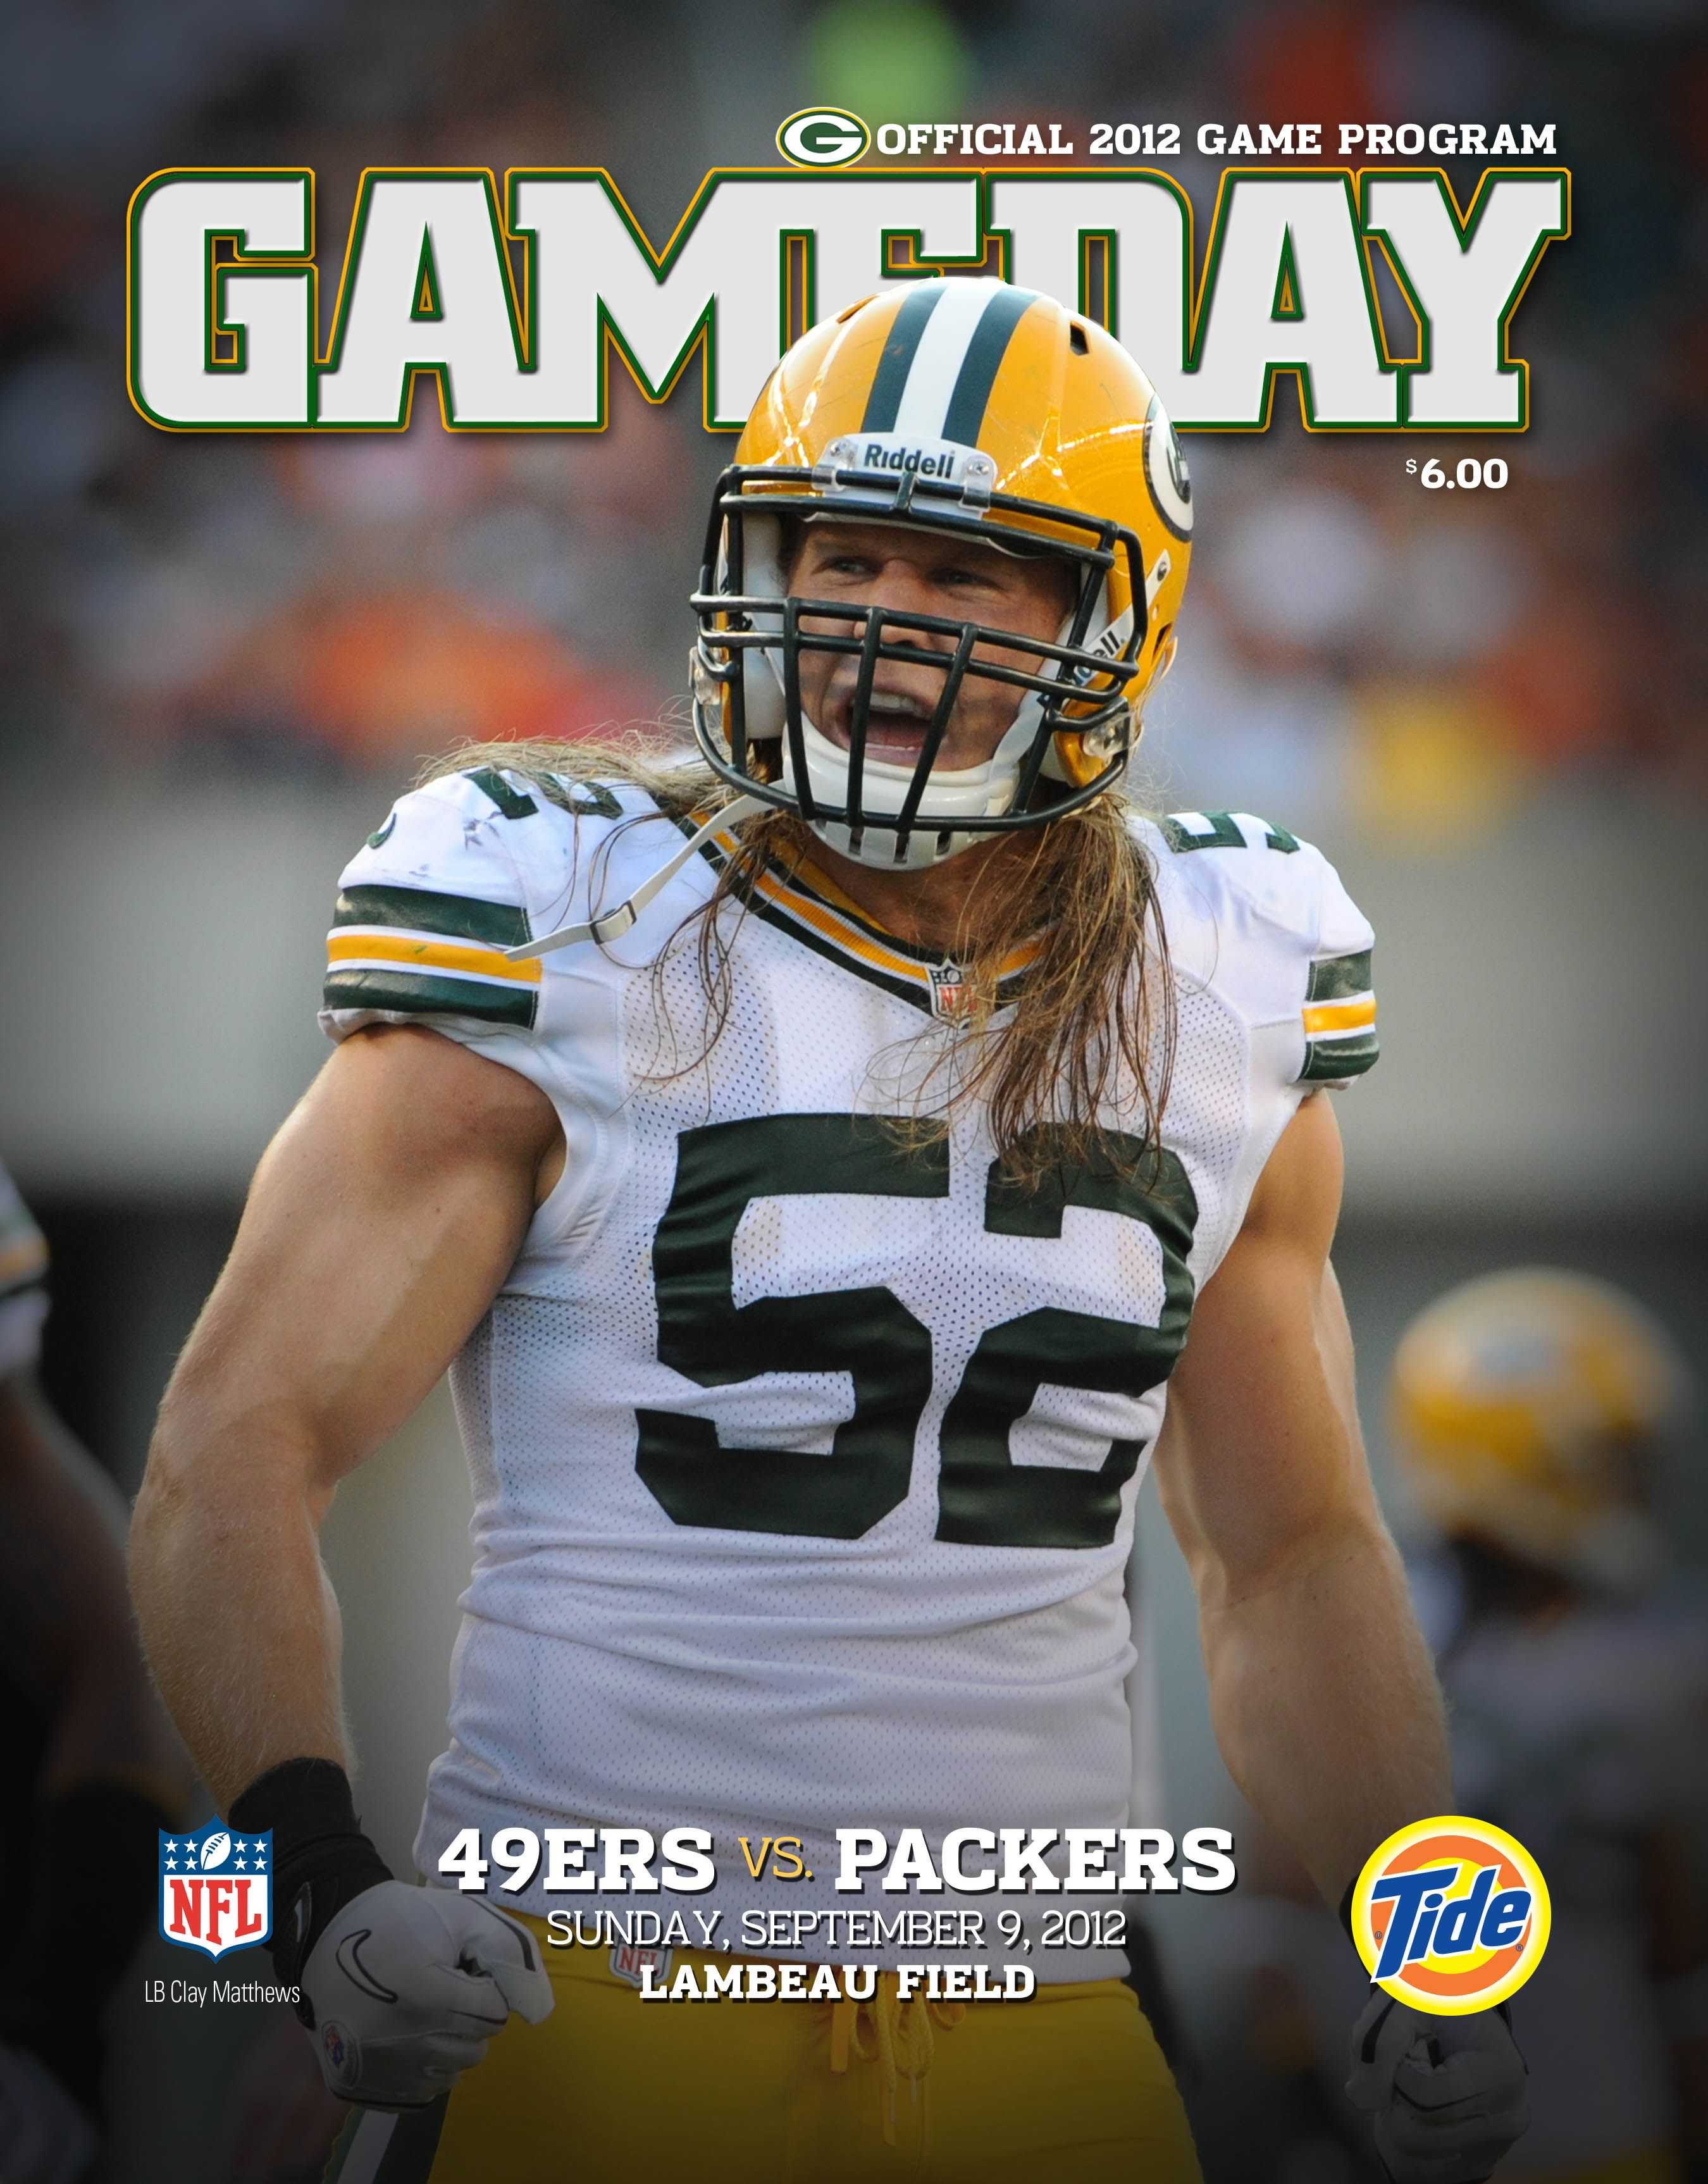 Pin By Laura Hardie On Green Bay Packers In 2020 Green Bay Packers Football Green Bay Packers Fans Clay Matthews